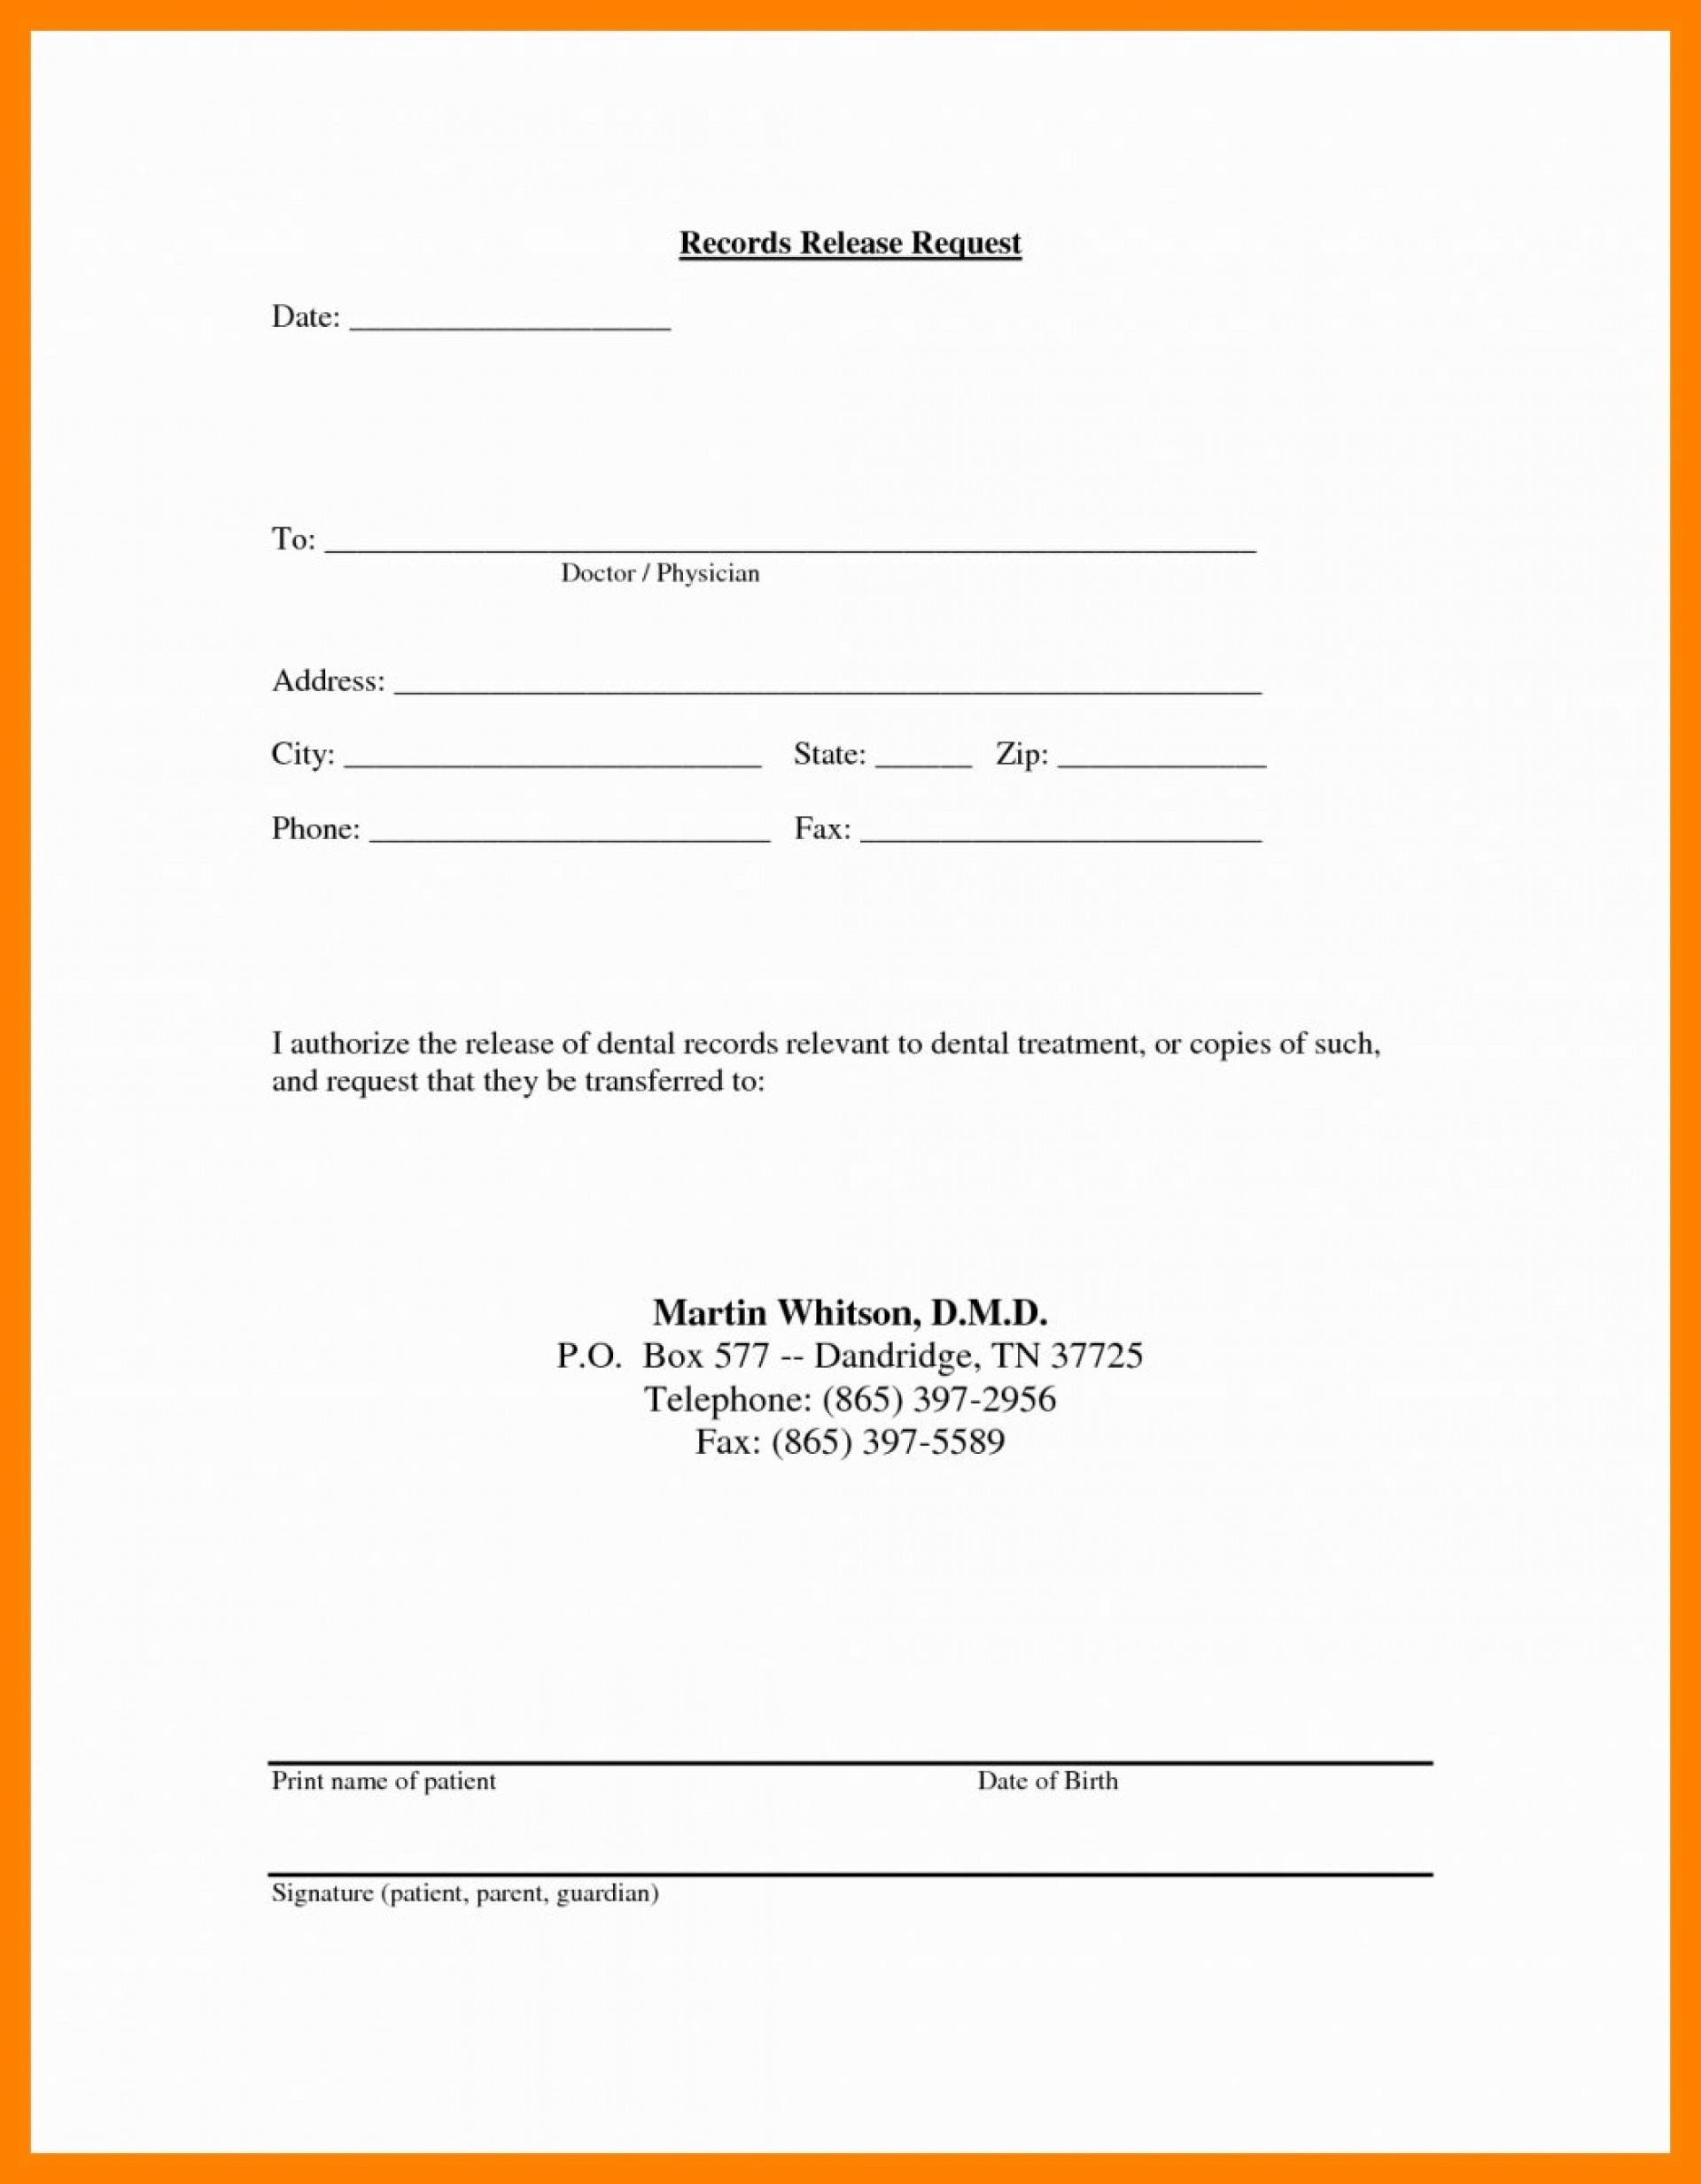 010 request medical records release form template ideas invoice for medical records request